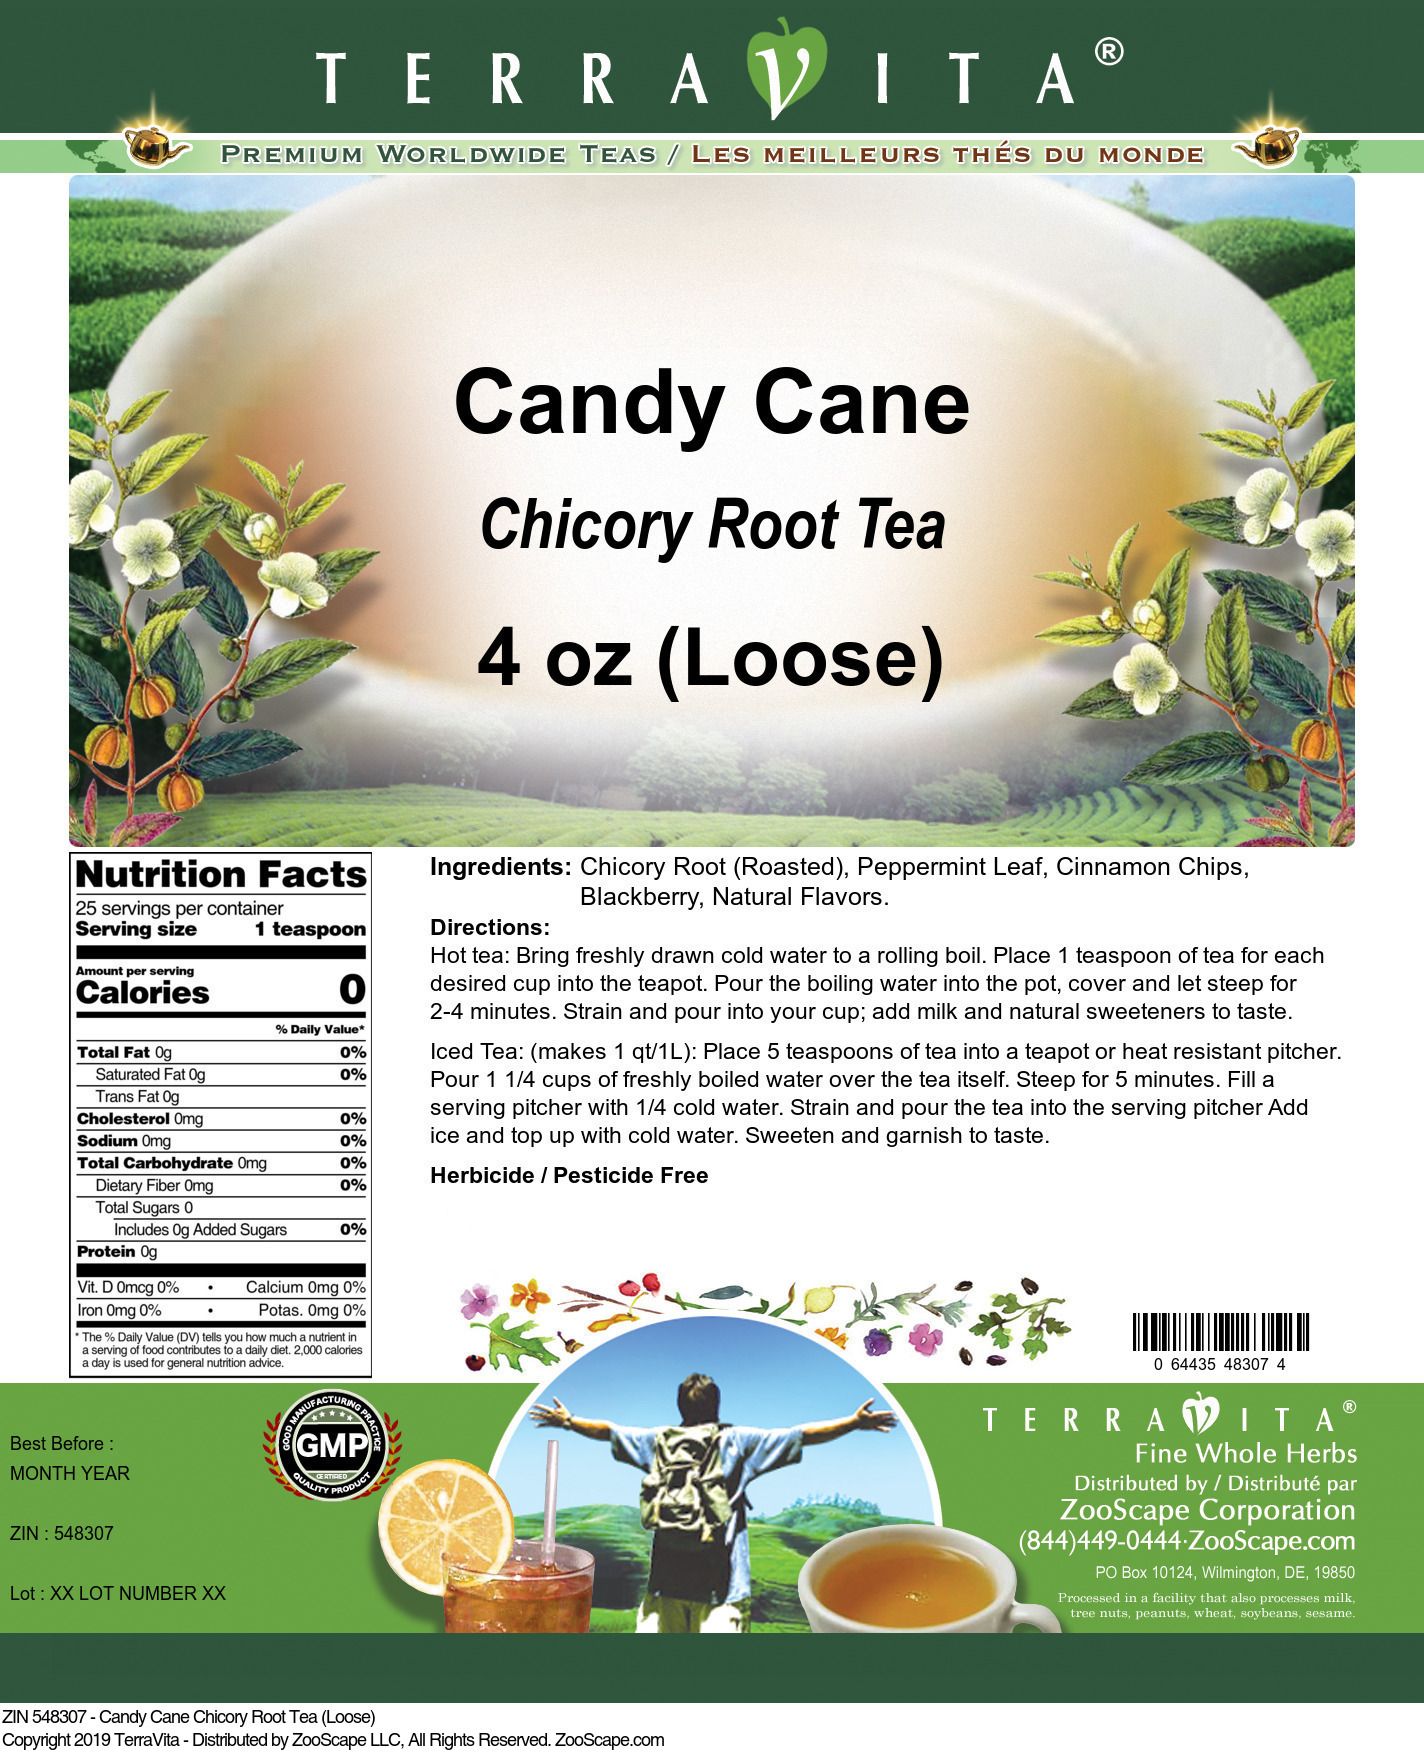 Candy Cane Chicory Root Tea (Loose)